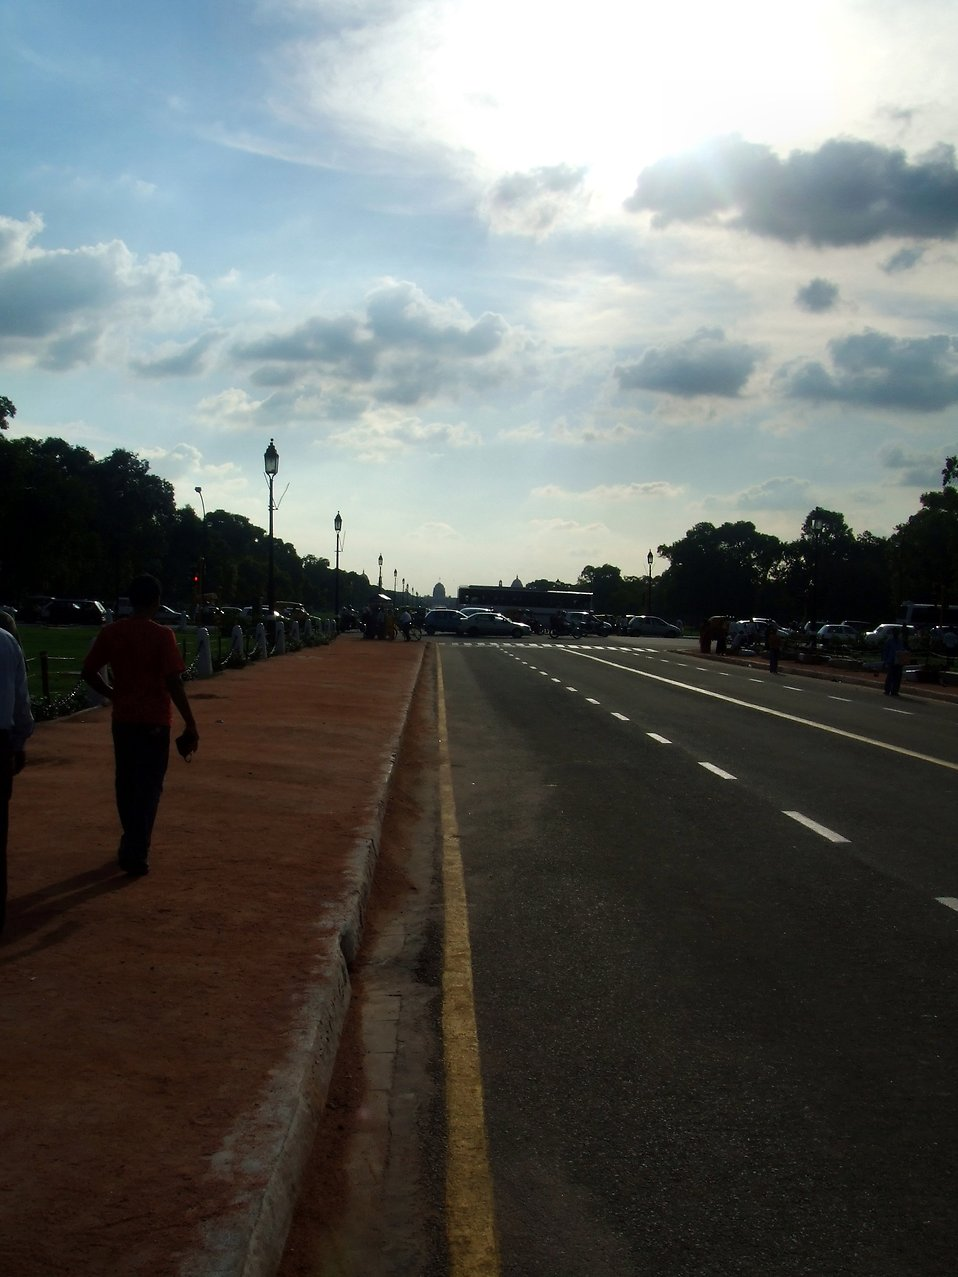 Rajpath : Free Stock Photo